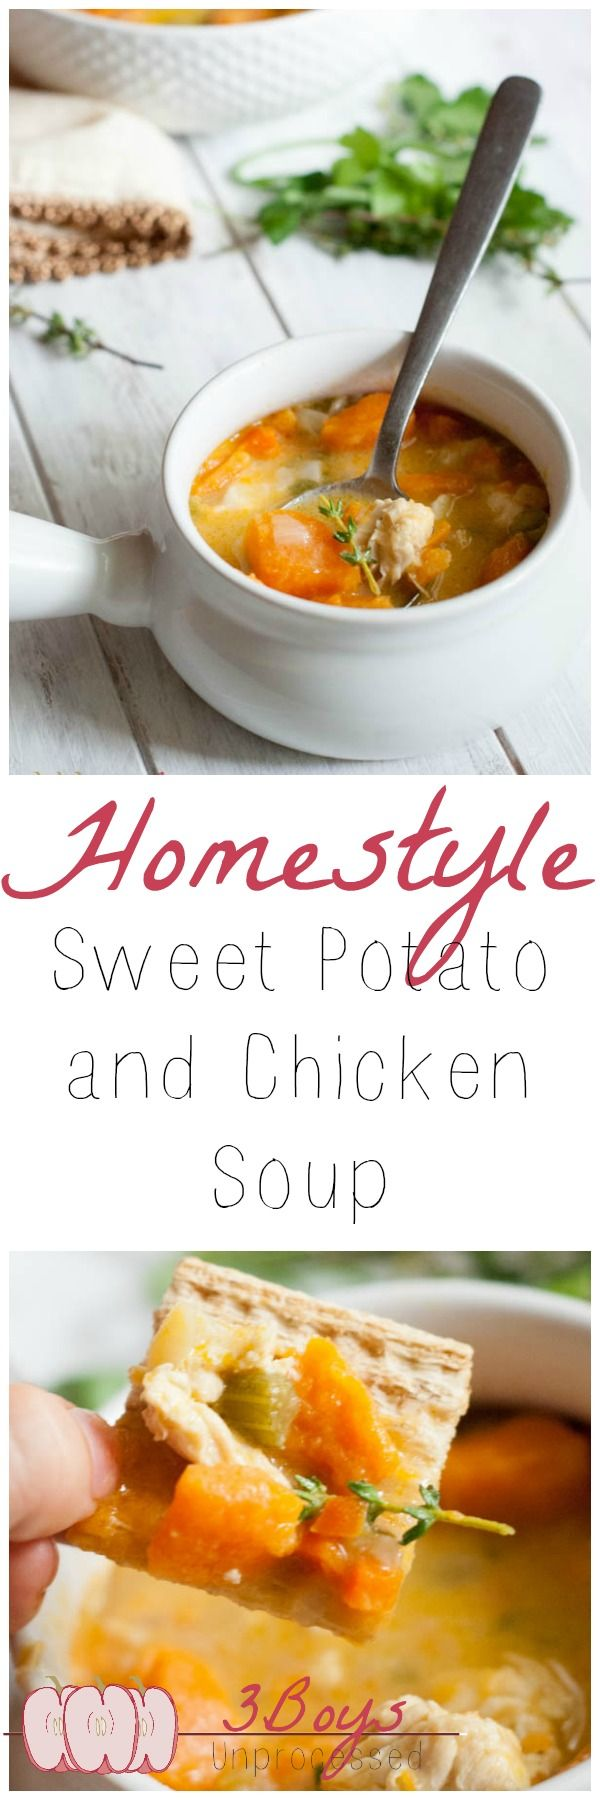 Homestyle Sweet Potato and Chicken Soup (Paleo Soup Chicken)